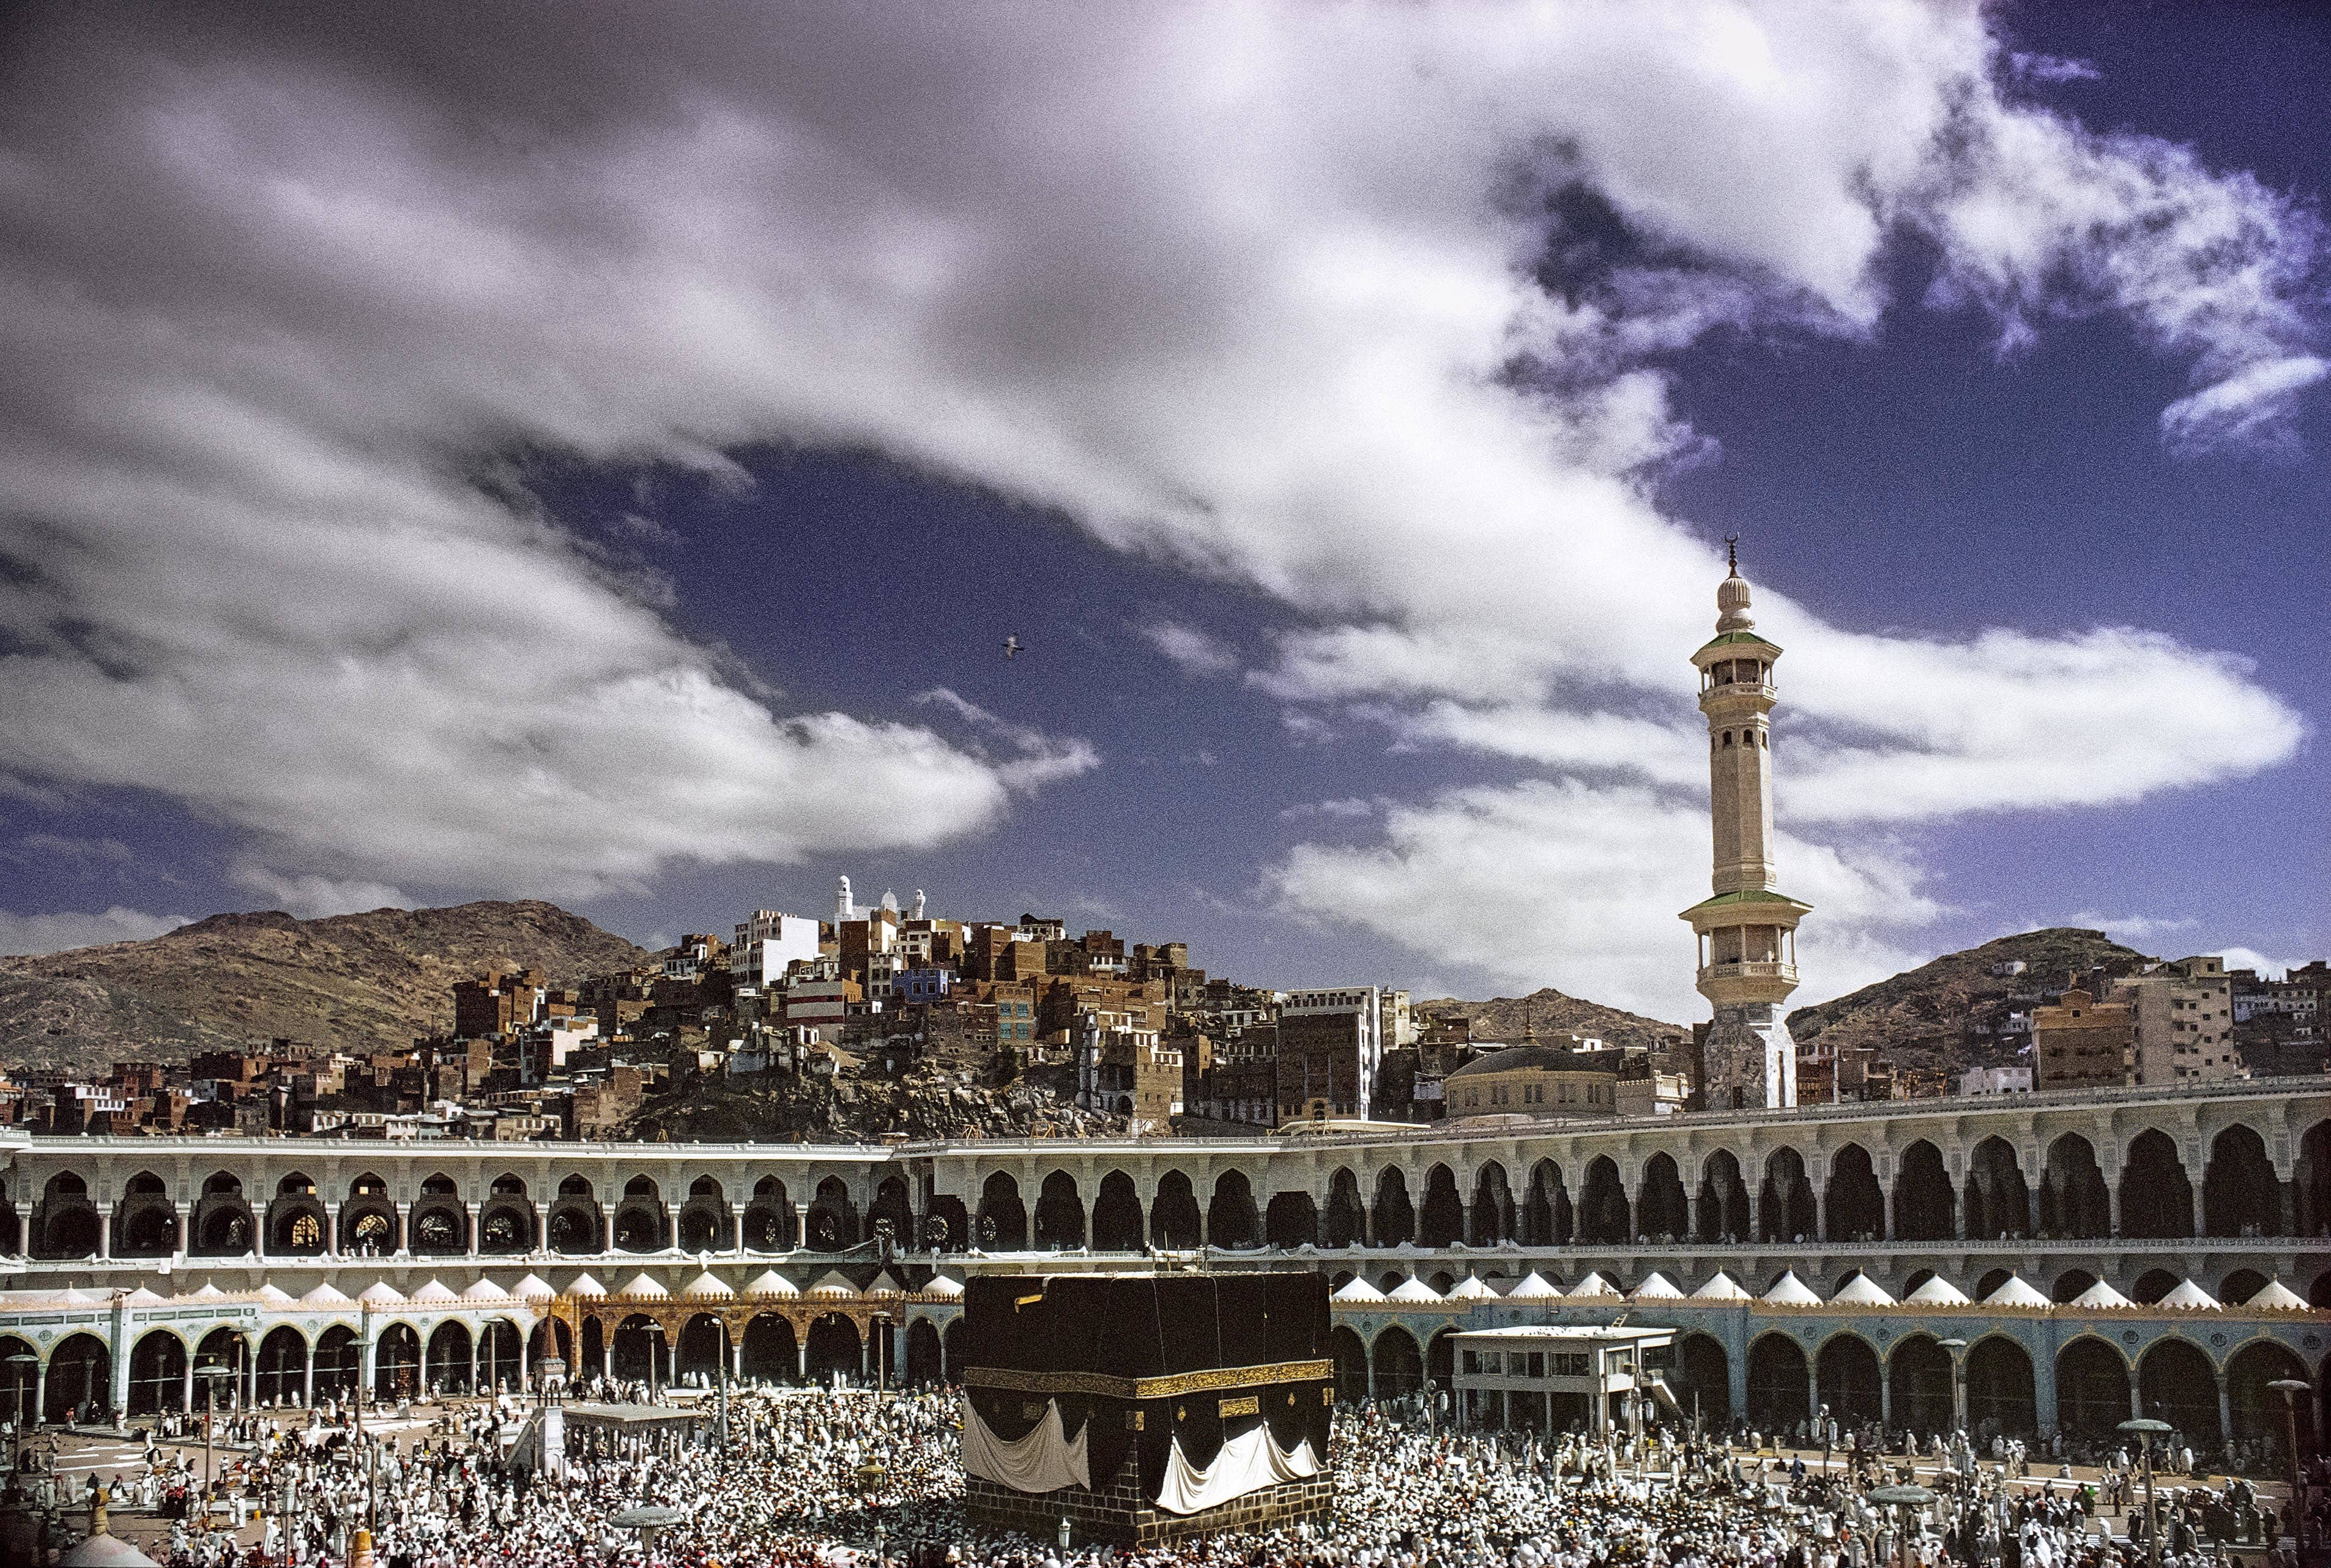 A view of the Kaaba captured in 1971: Peter Sanders Photography